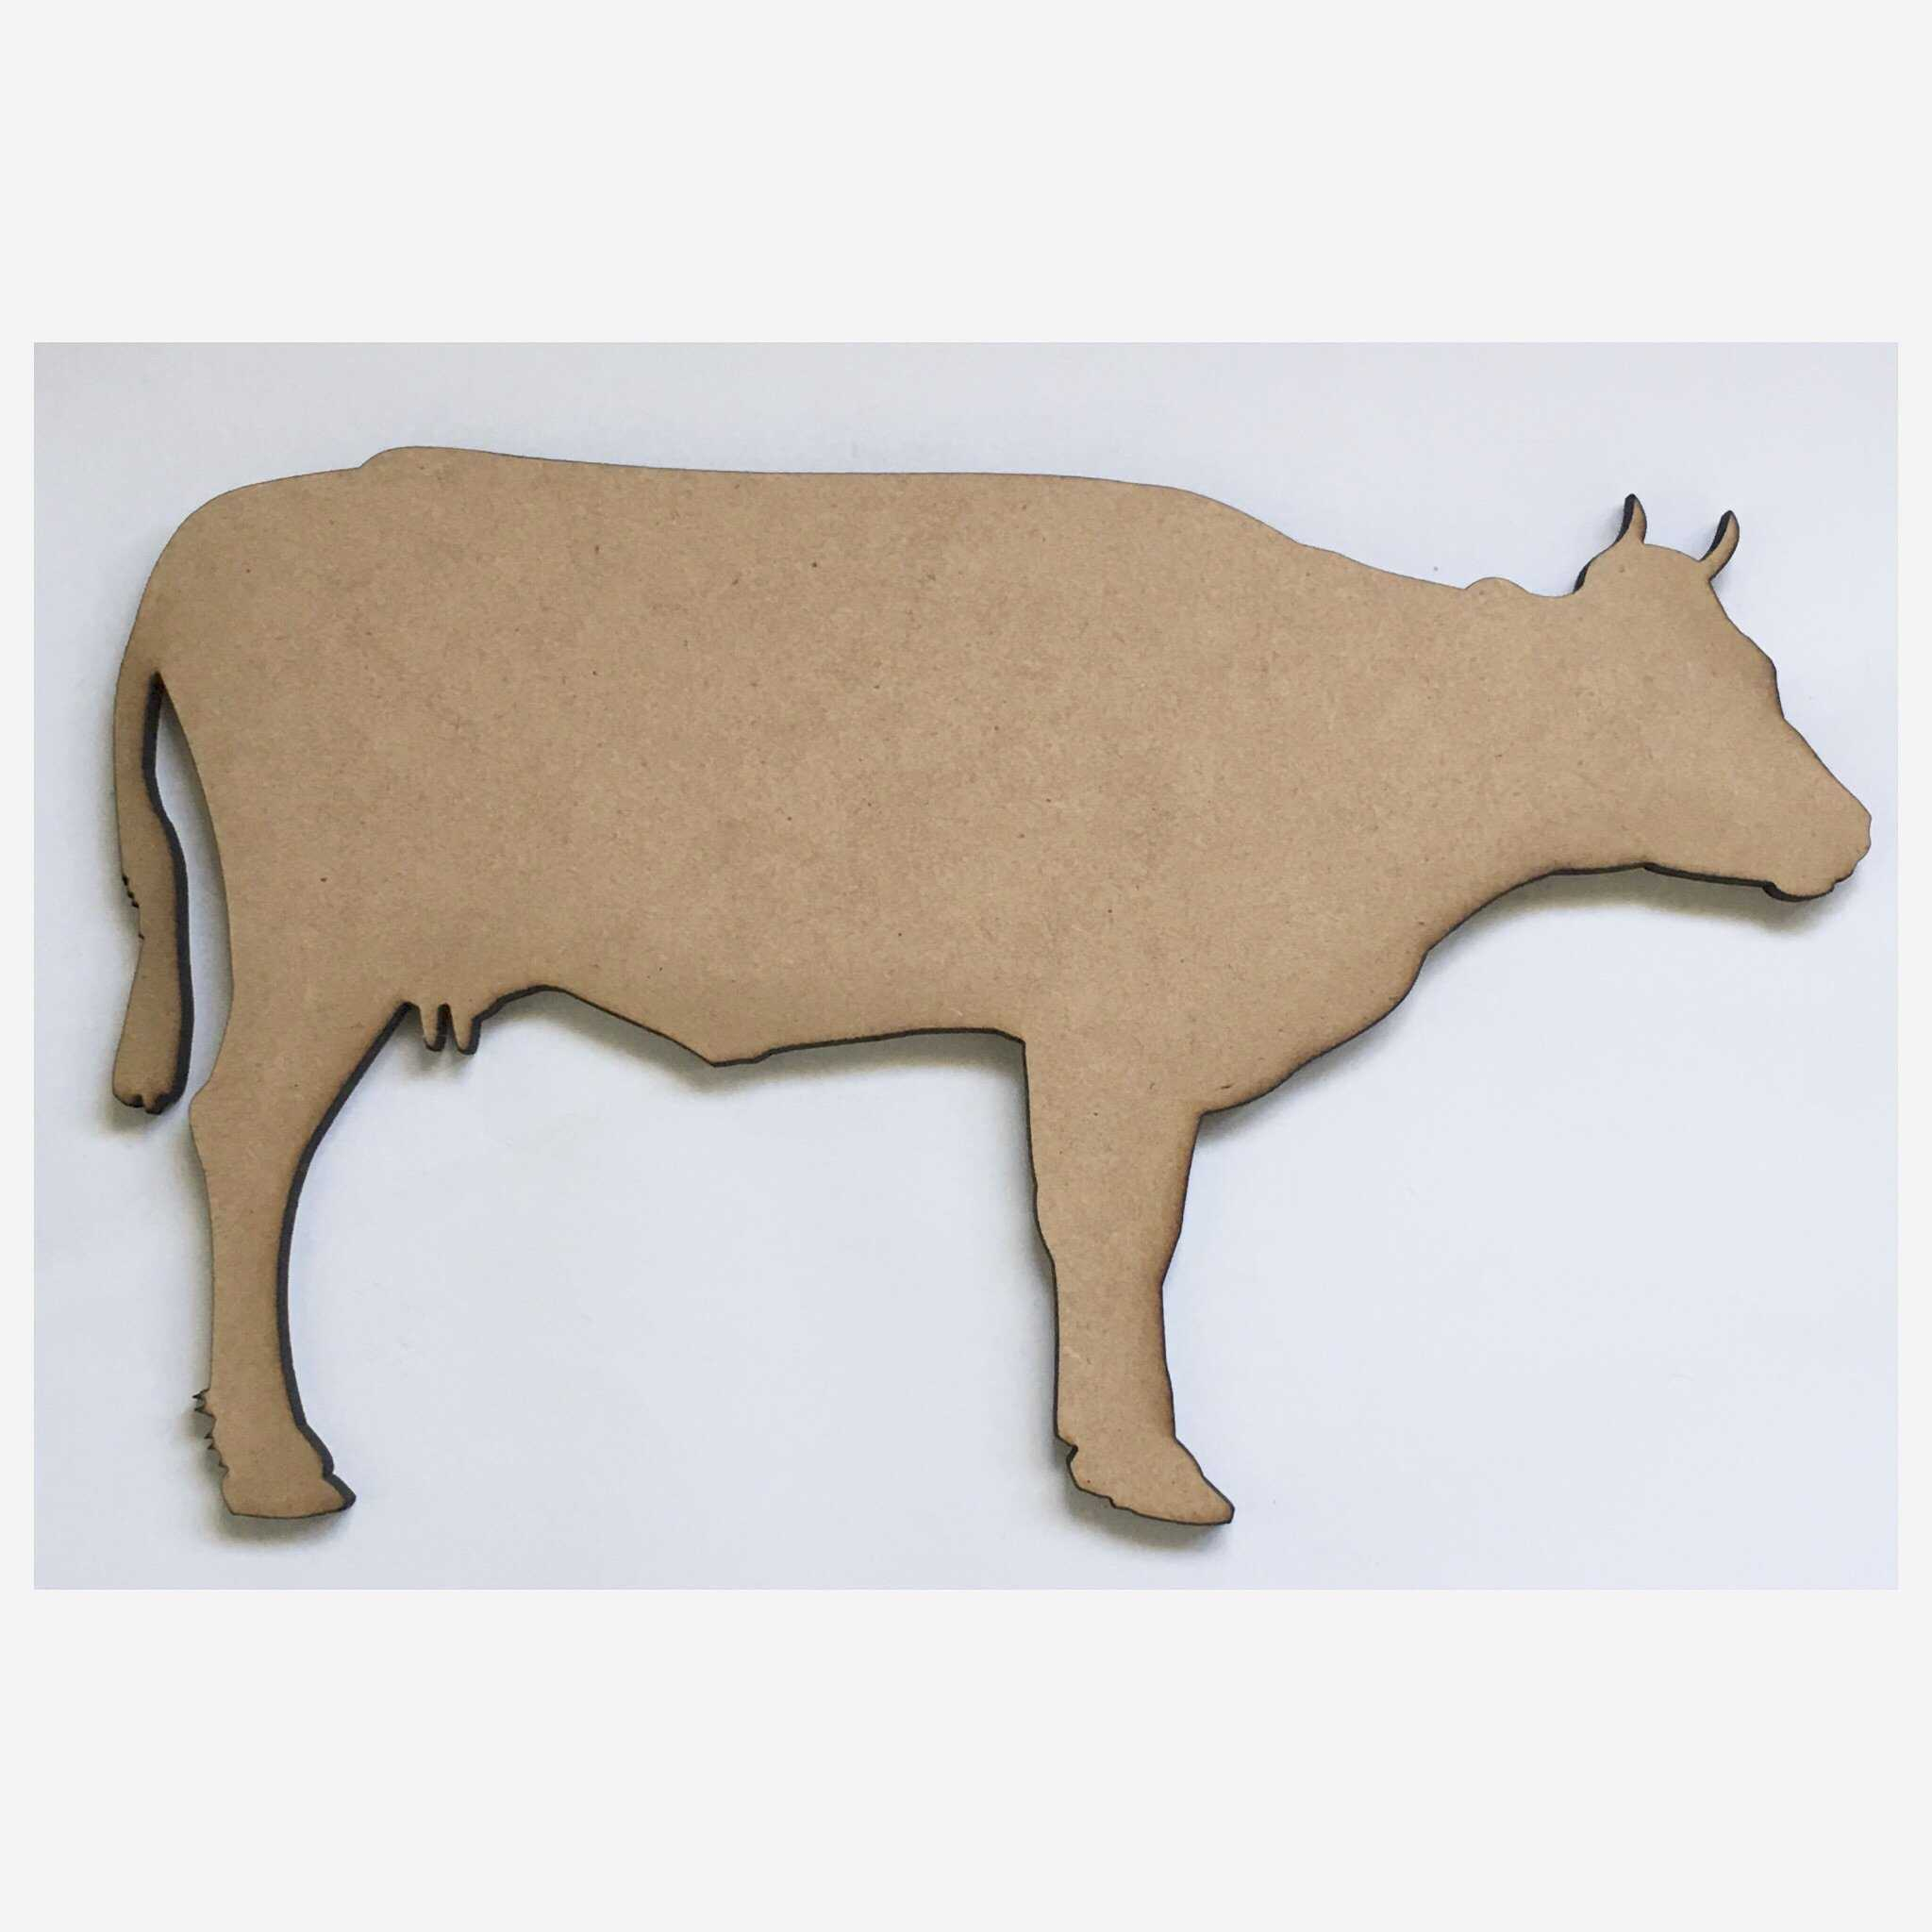 Cow MDF Shape Raw Cut Out Art Other Home Décor The Renmy Store